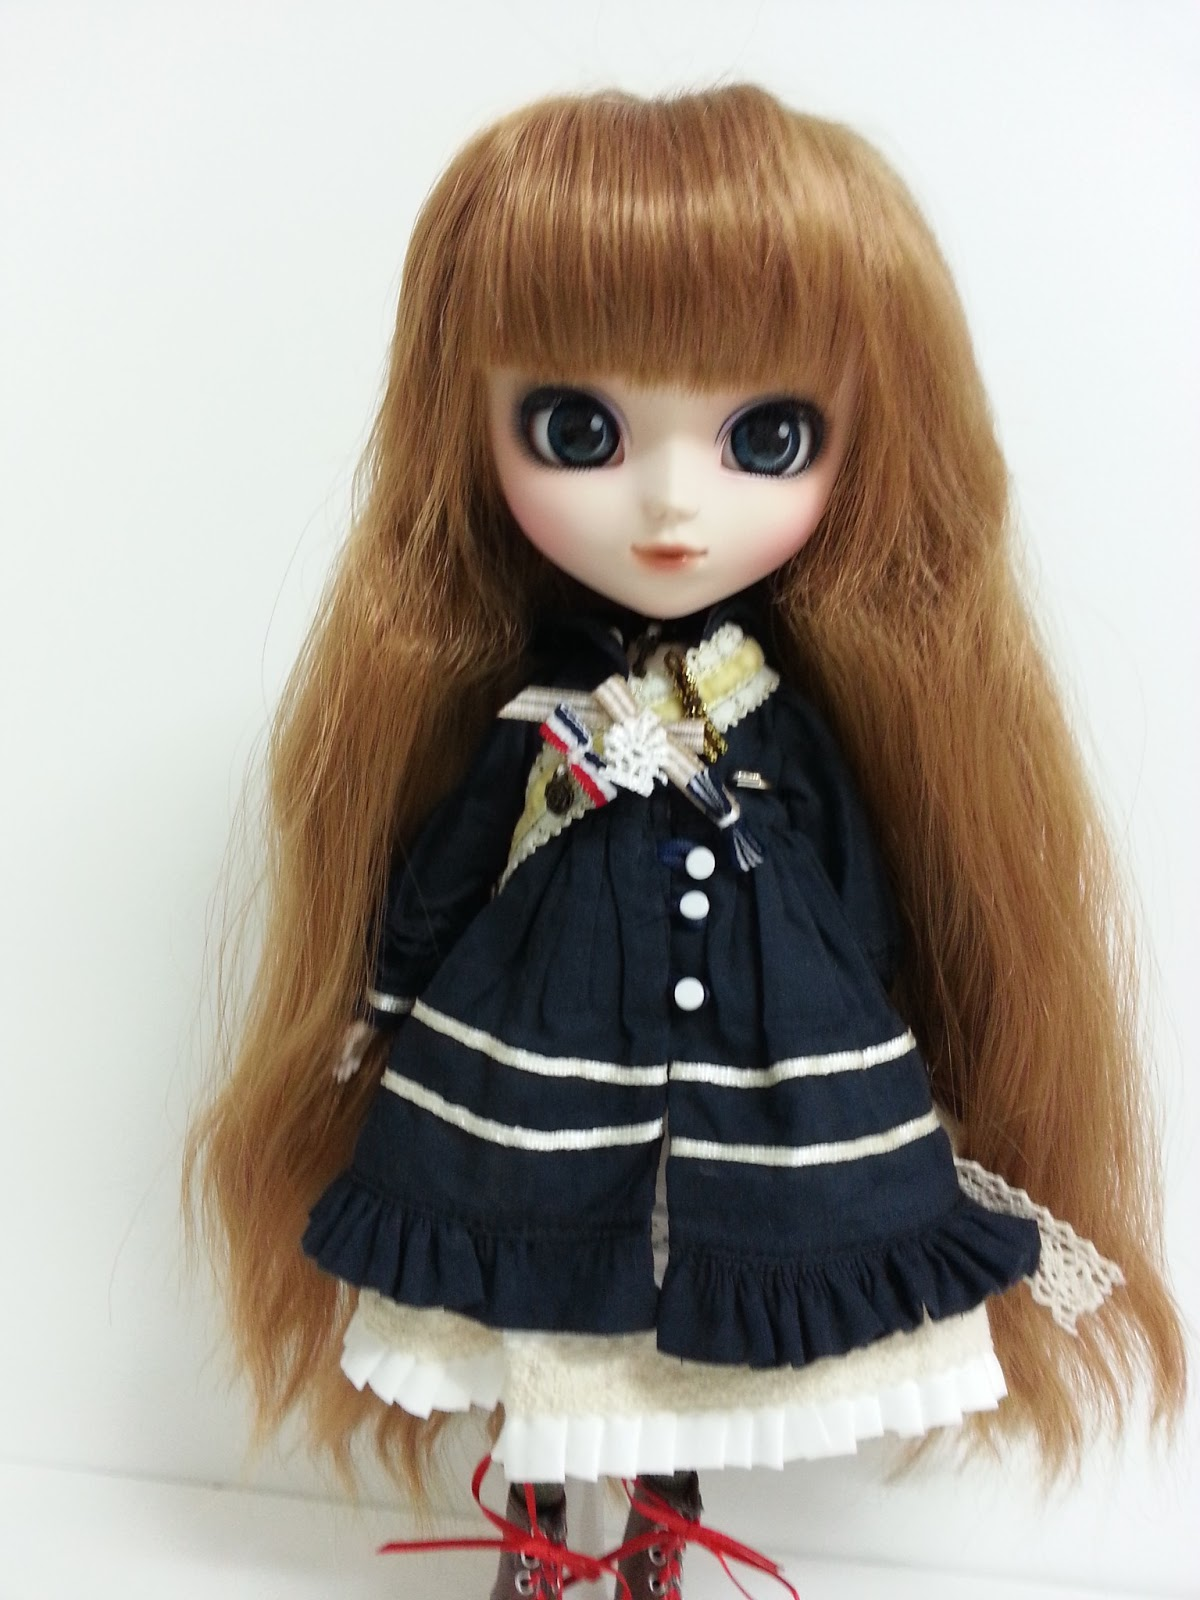 Jane Ch 233 Rie Unboxing Pullip Merl